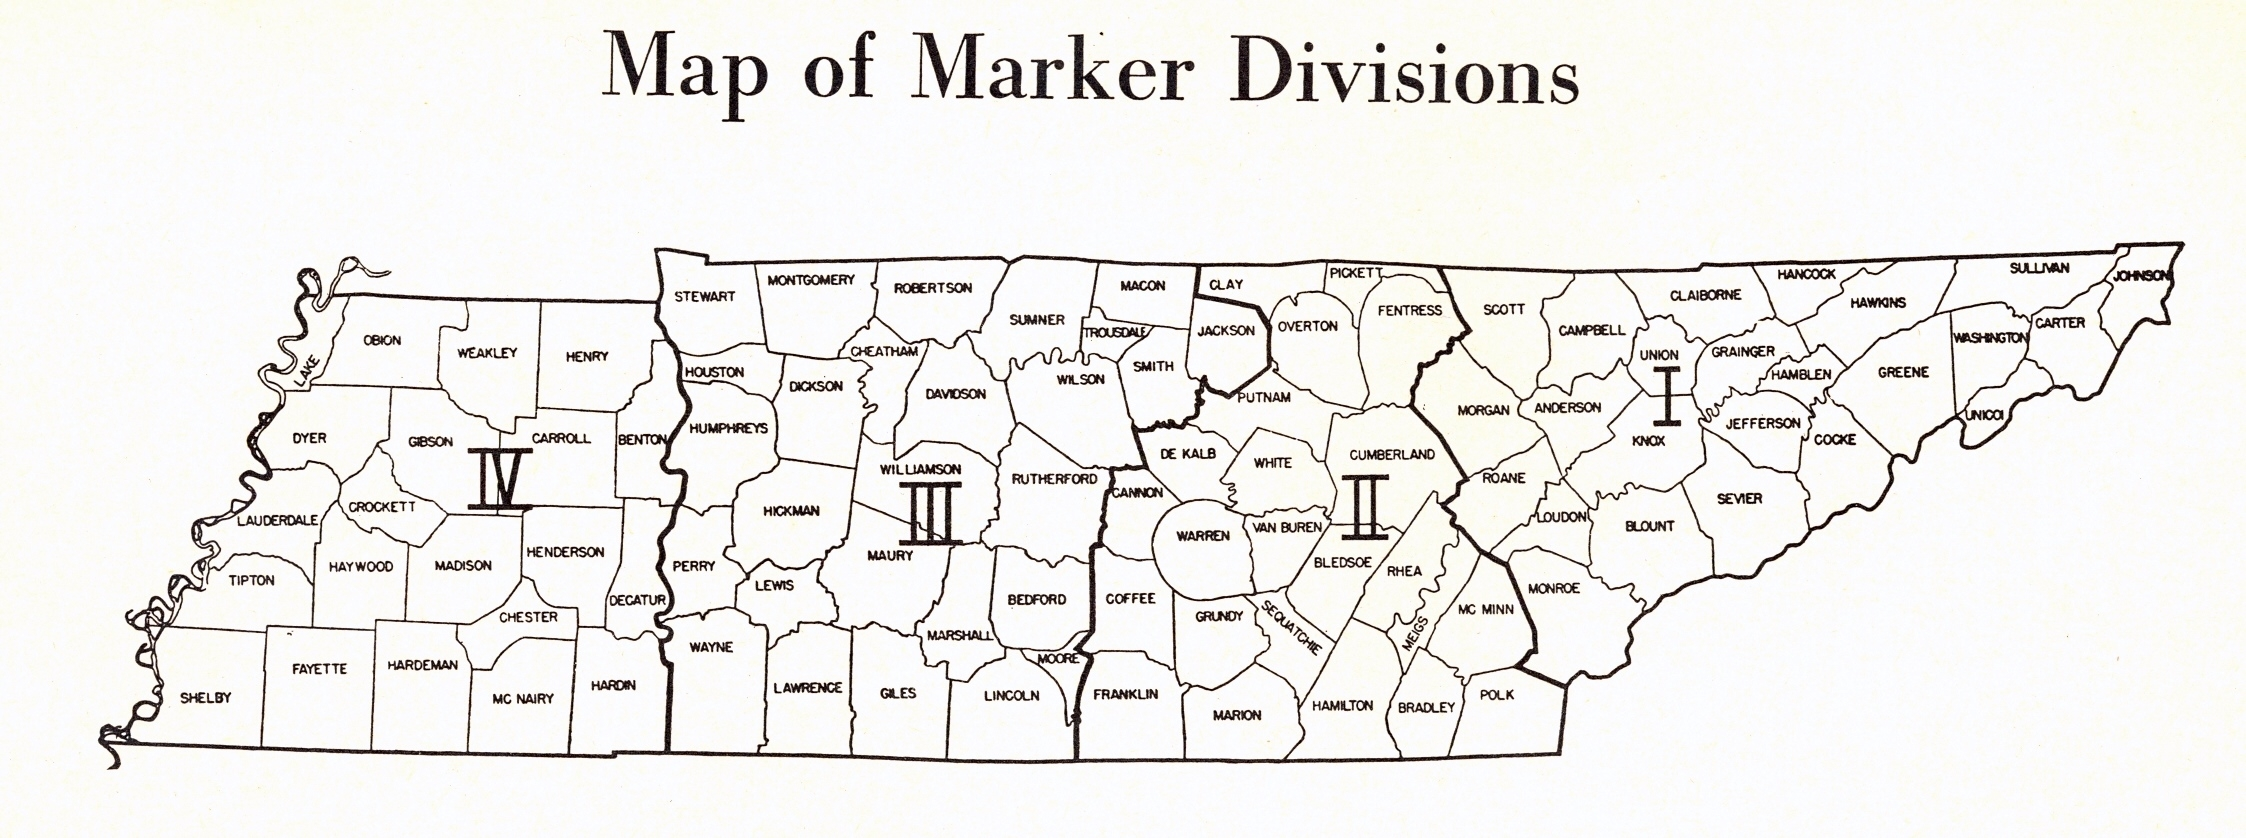 Map of Tennessee Marker Divisions